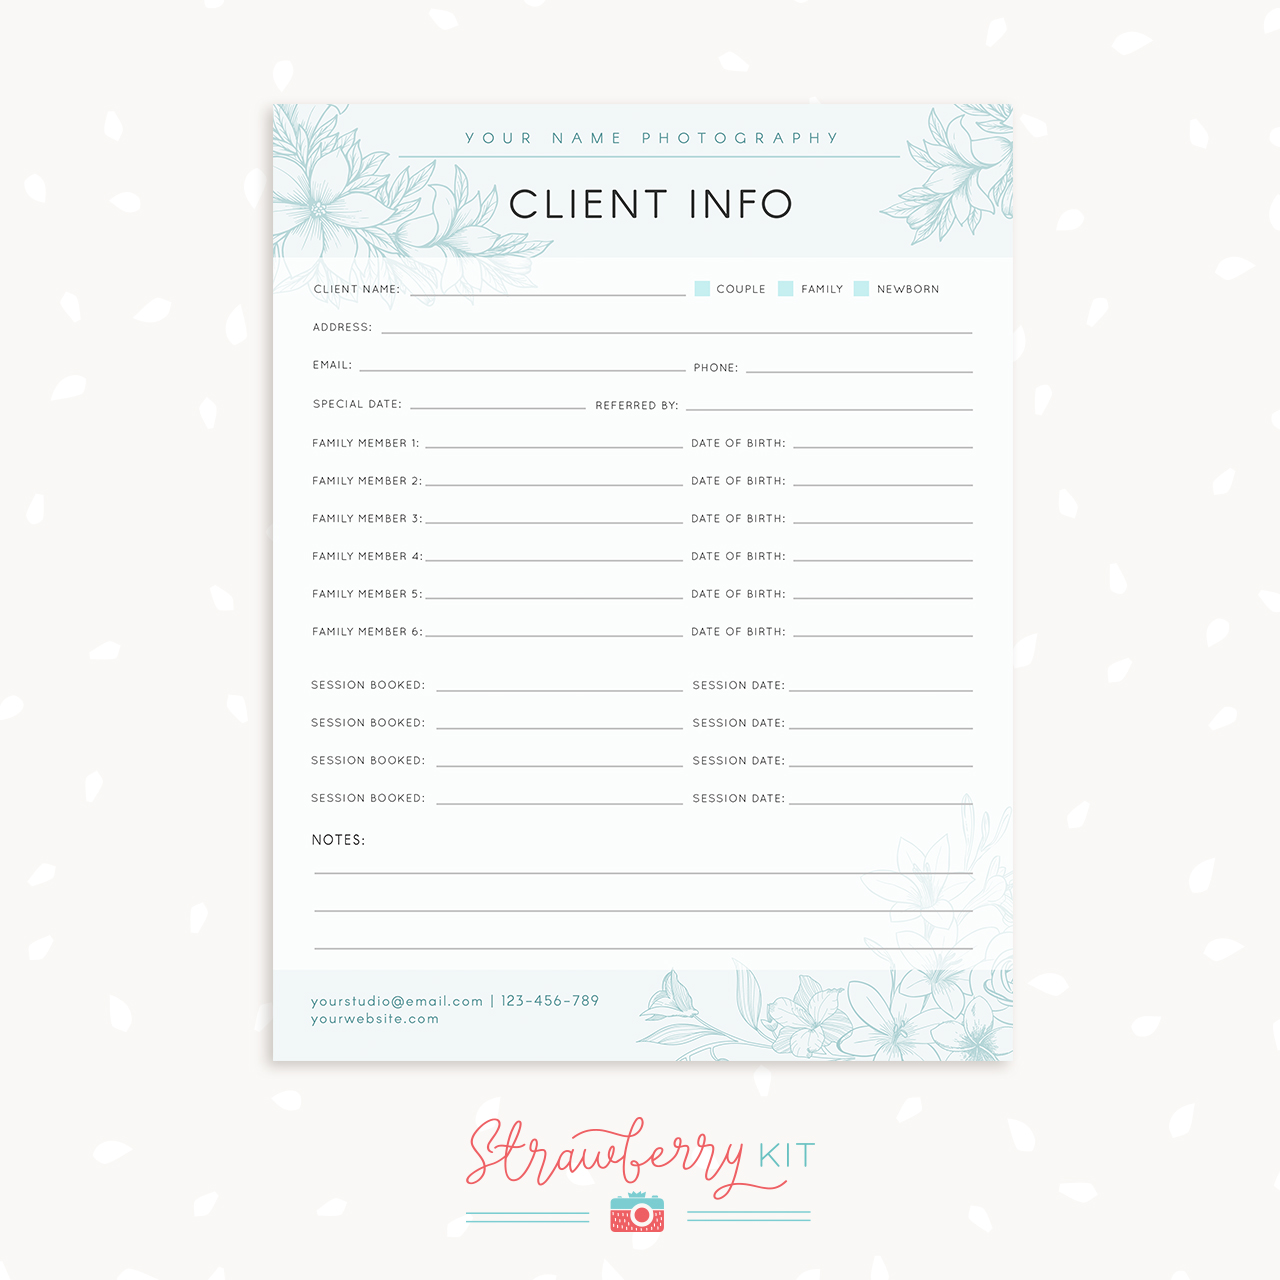 Client Information Form Photography